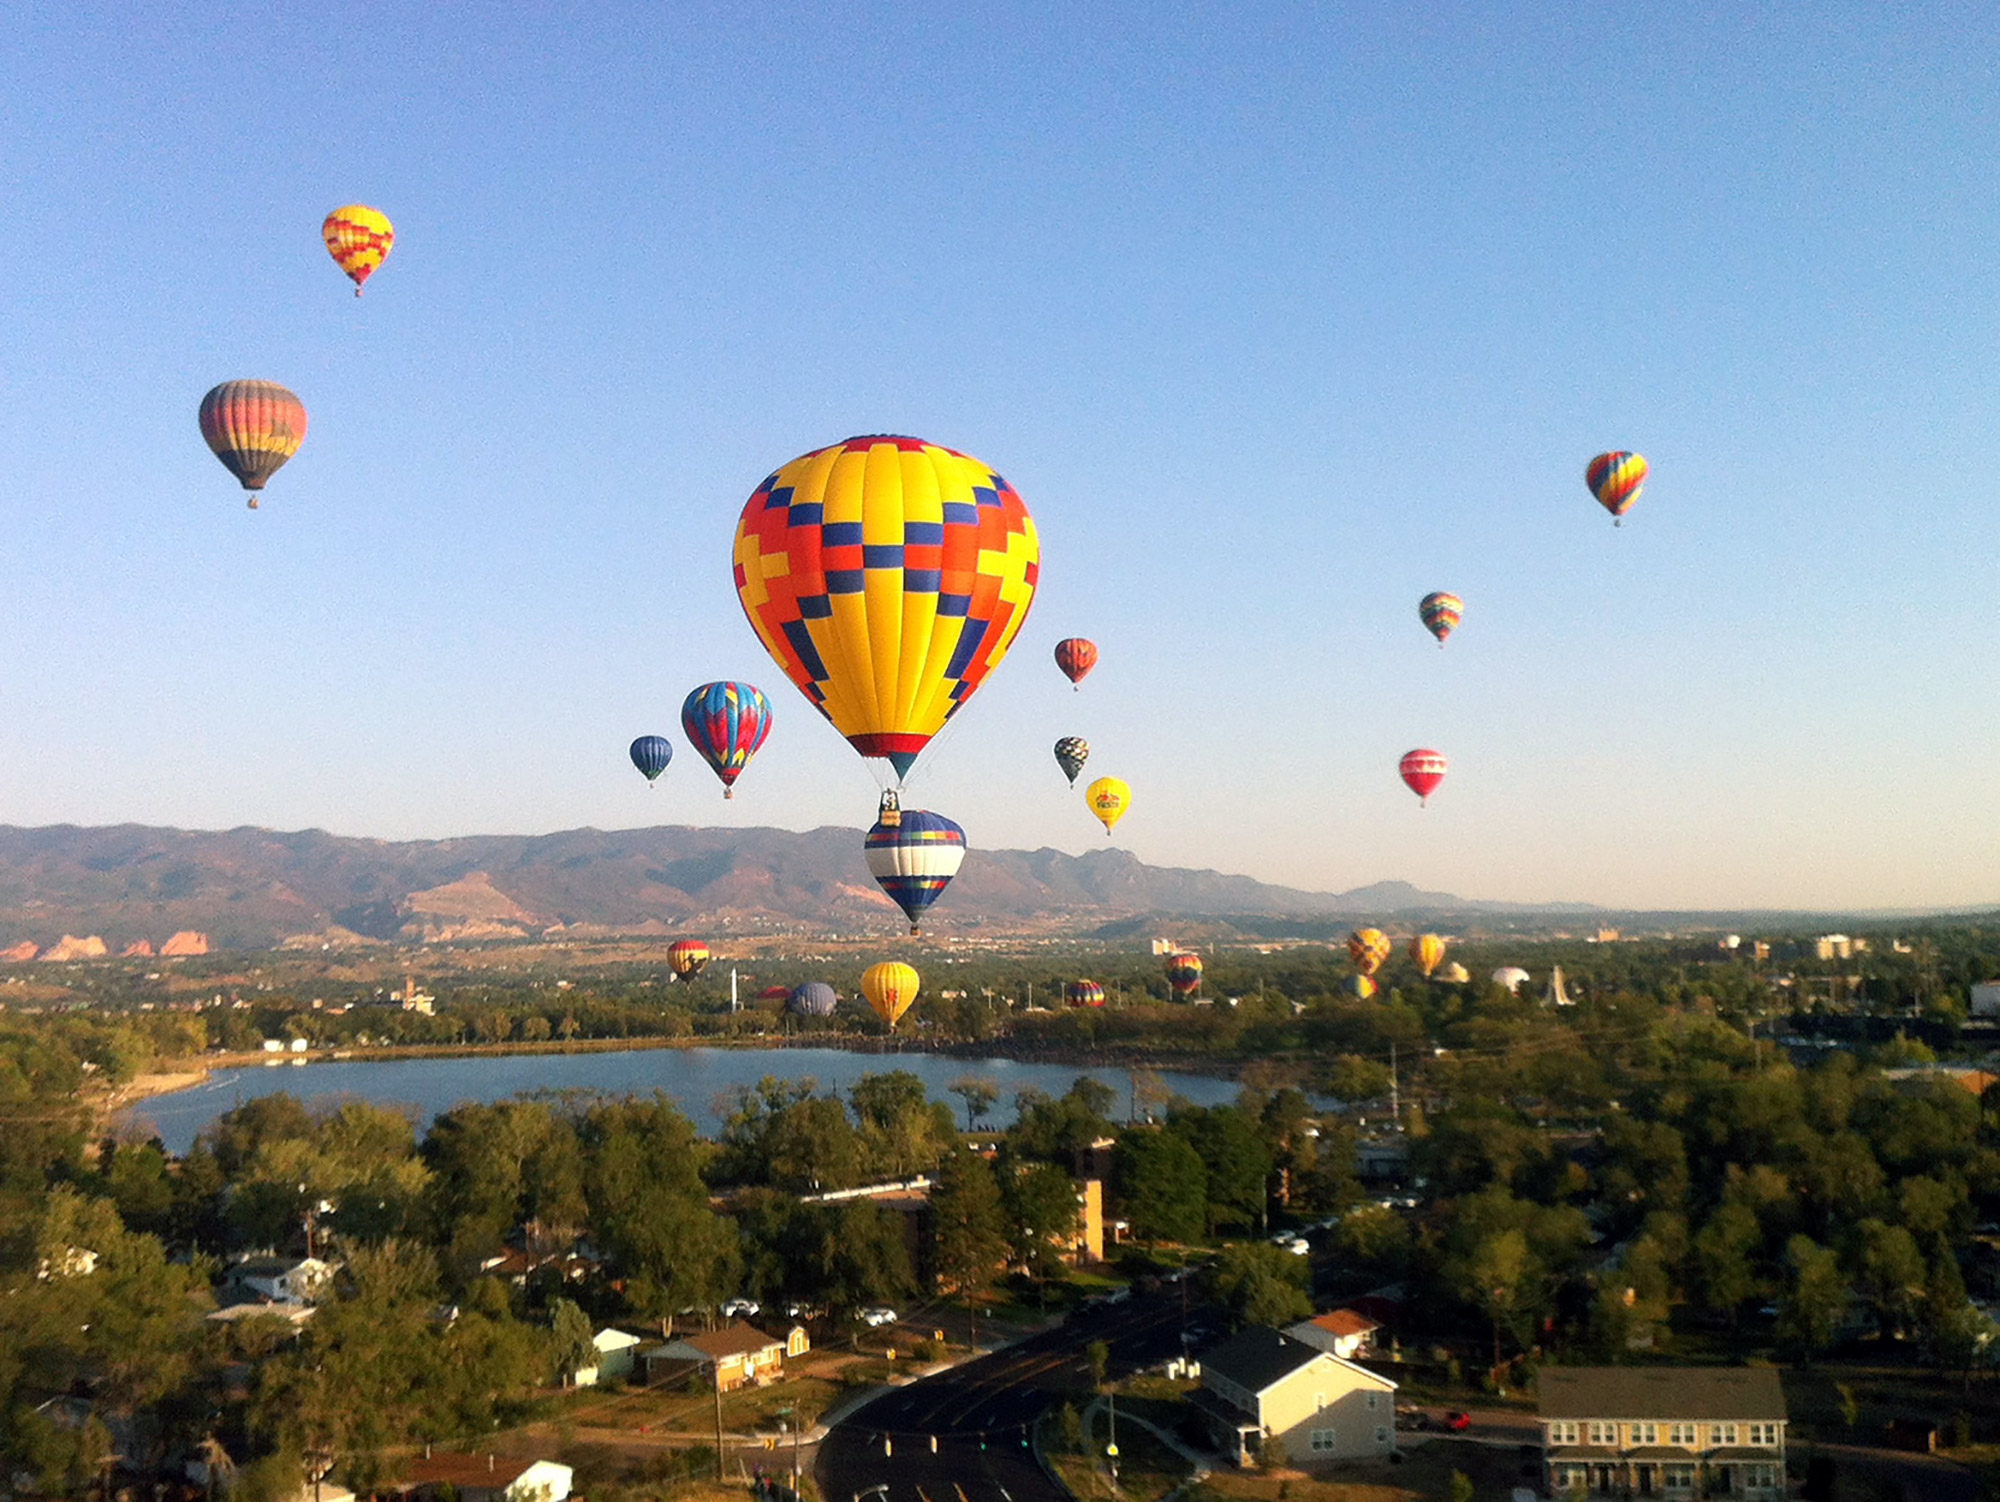 Dozens of hot air balloons taking off in the morning next to a lake with mountains in the background